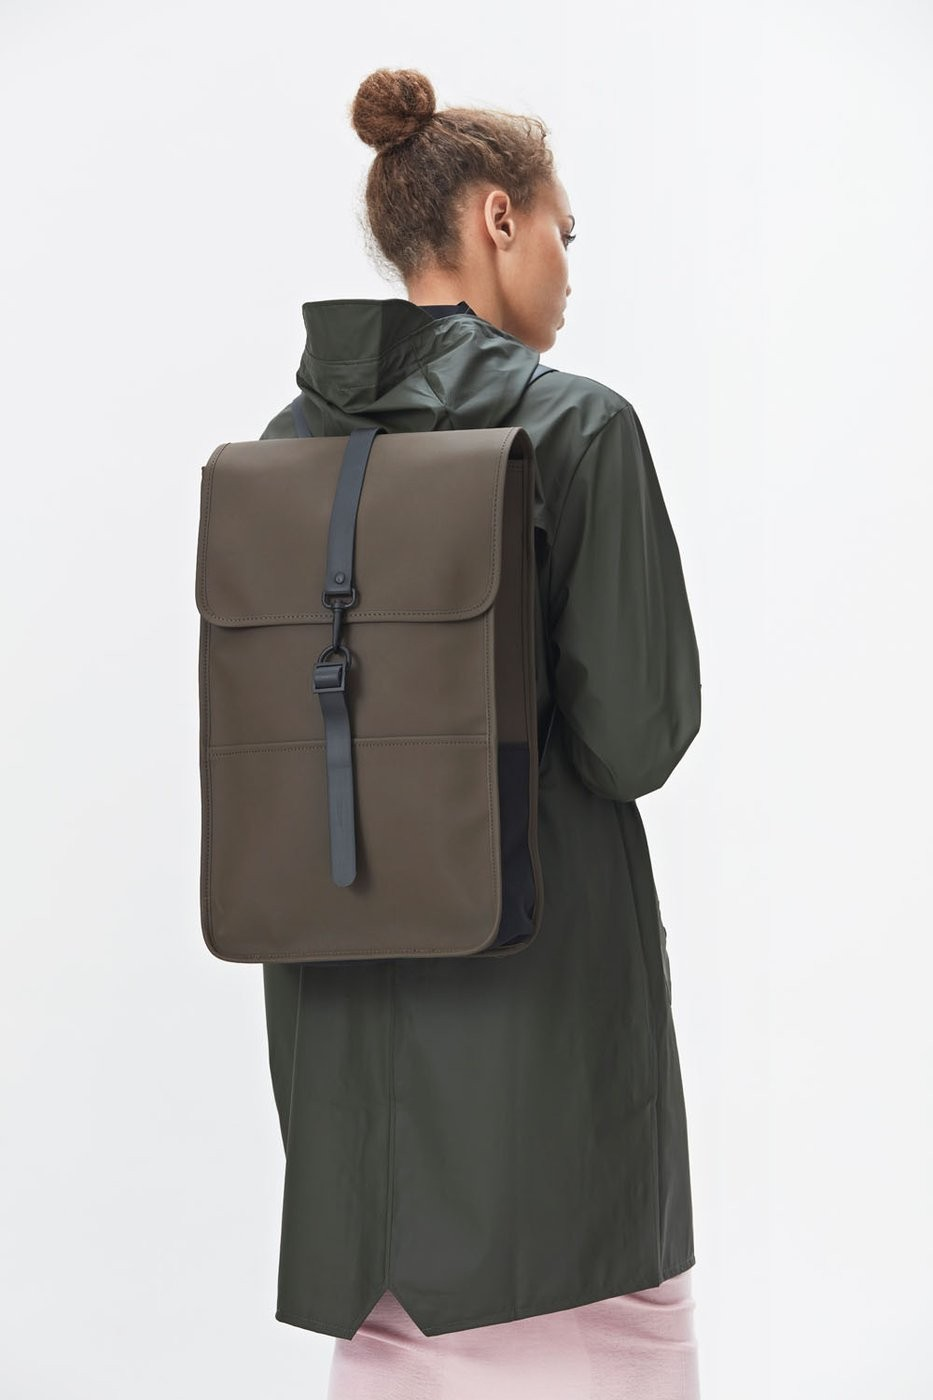 sac dos rains backpack marron brown rains sac dos tendance. Black Bedroom Furniture Sets. Home Design Ideas